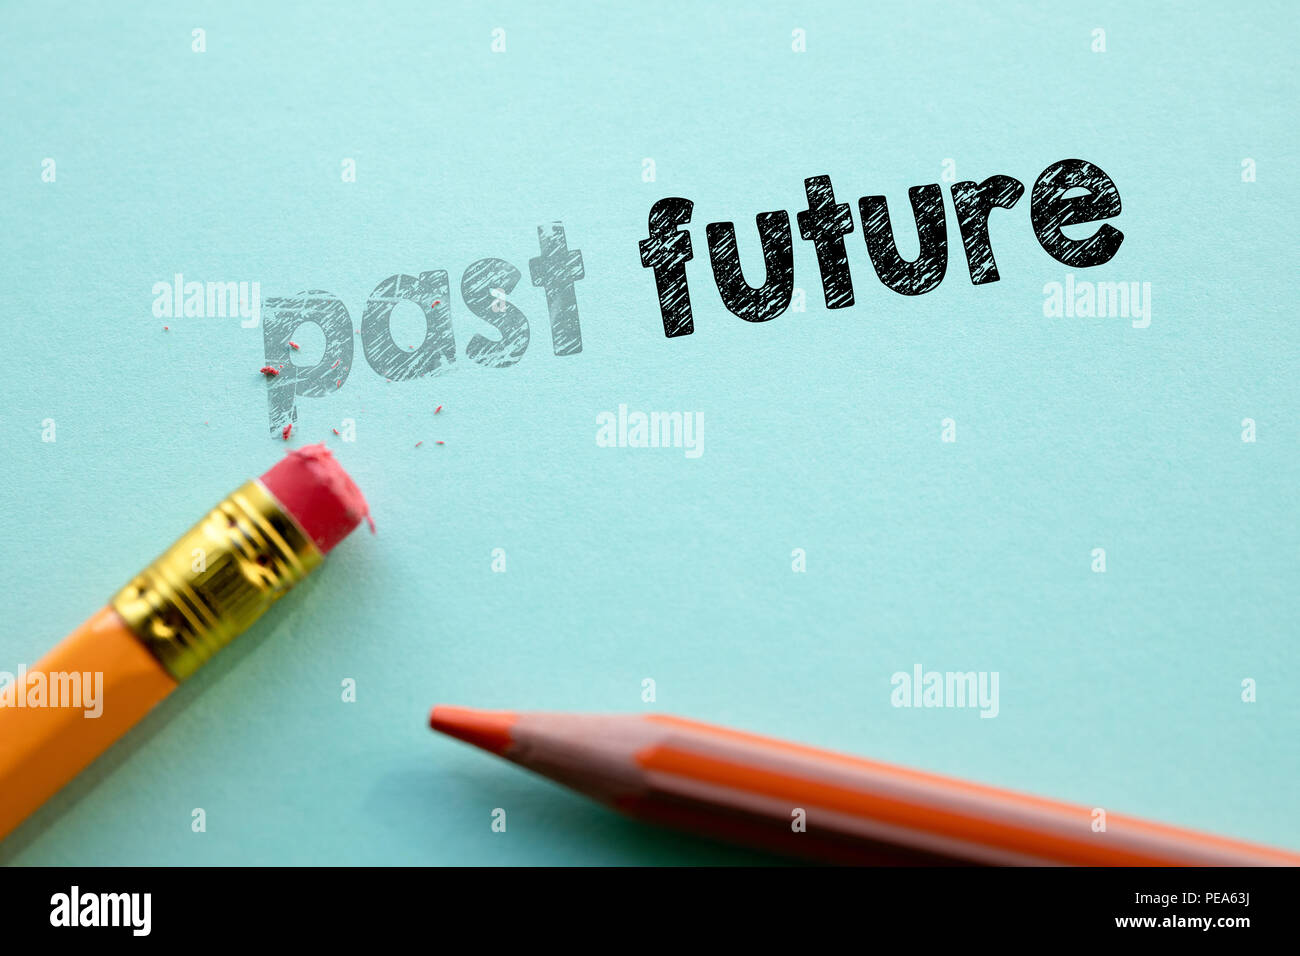 Making past in to future by eraser - Stock Image